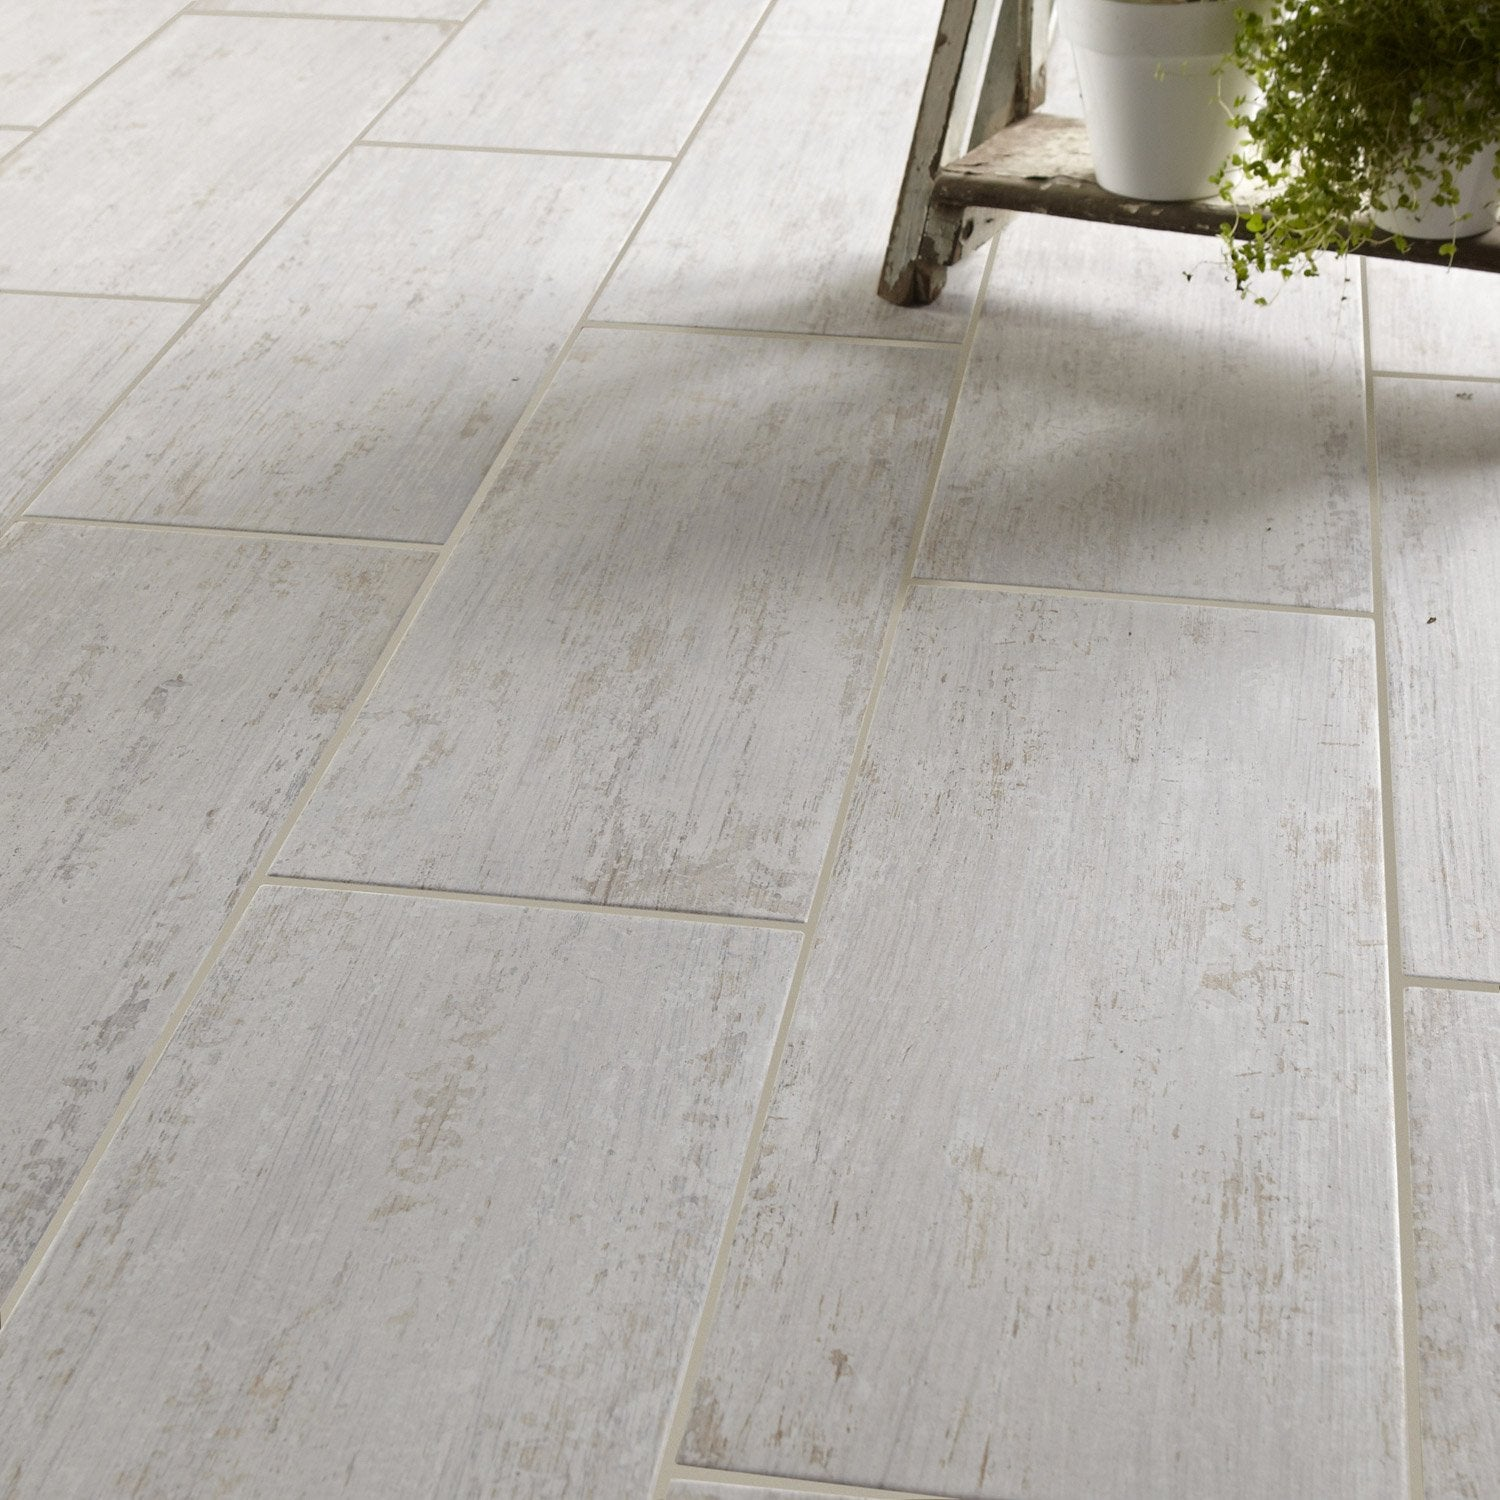 Carrelage leroy merlin for Leroy merlin carrelage metro blanc